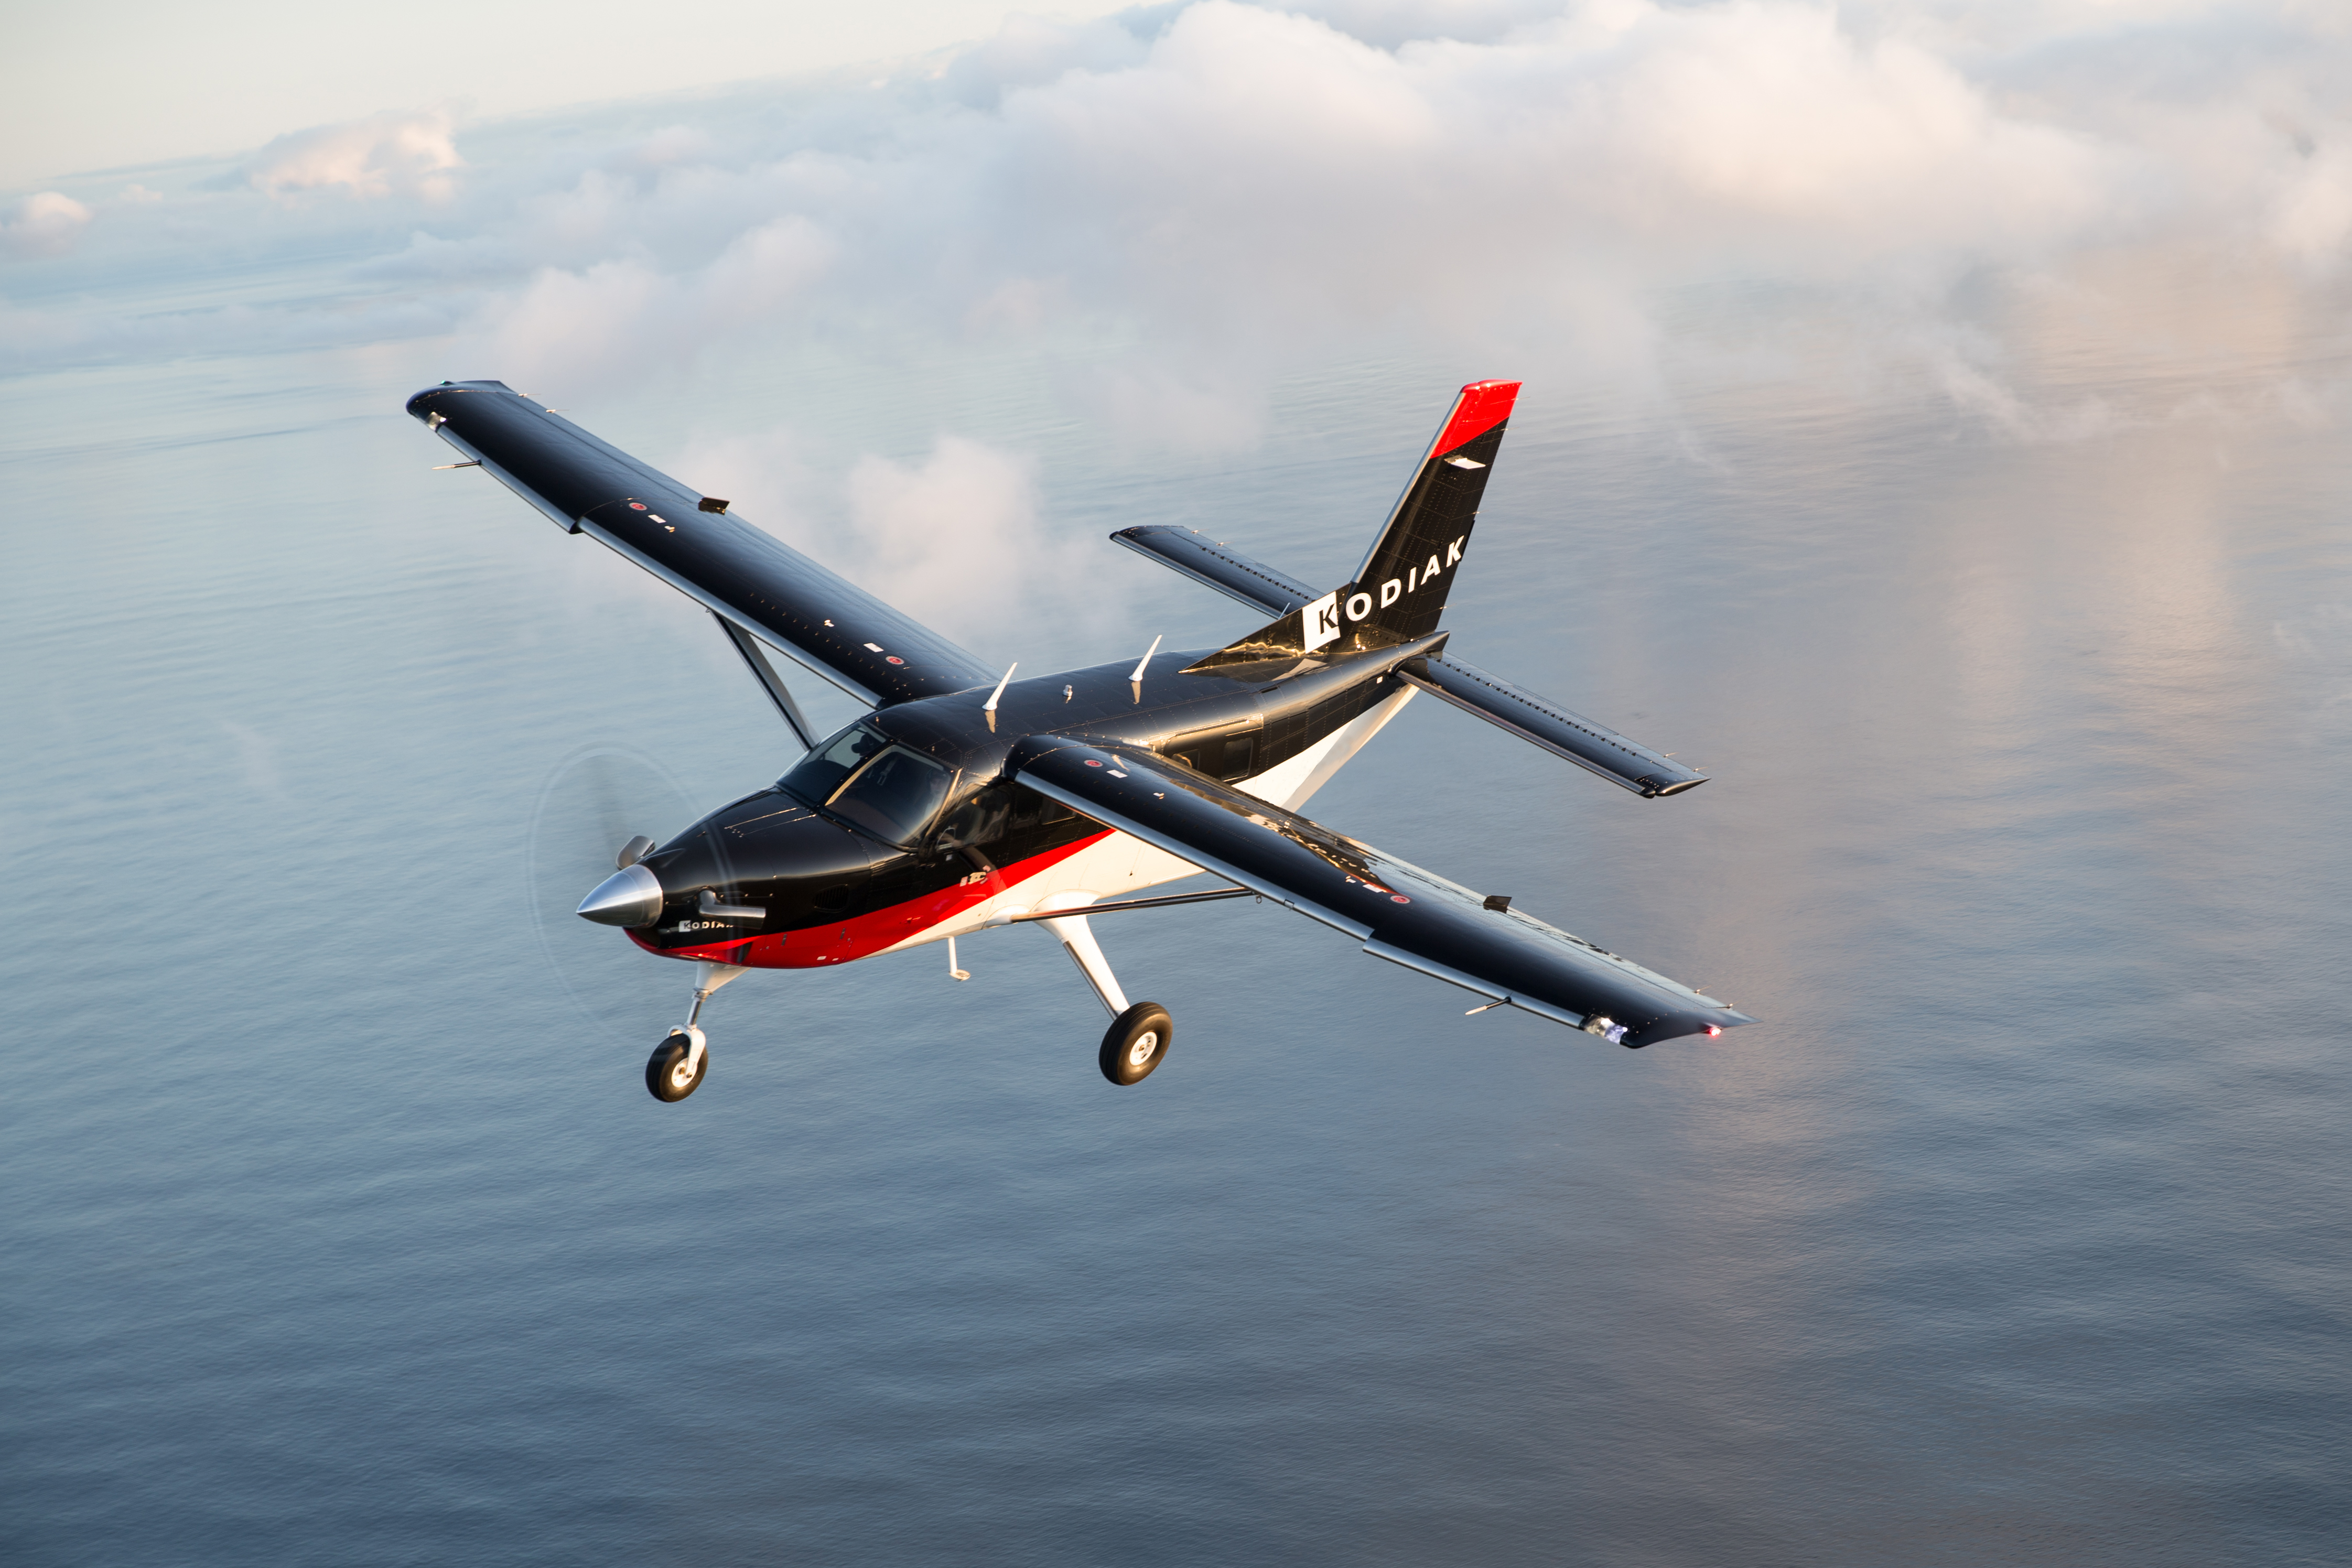 The Kodiak 100 by Quest Aircraft Company